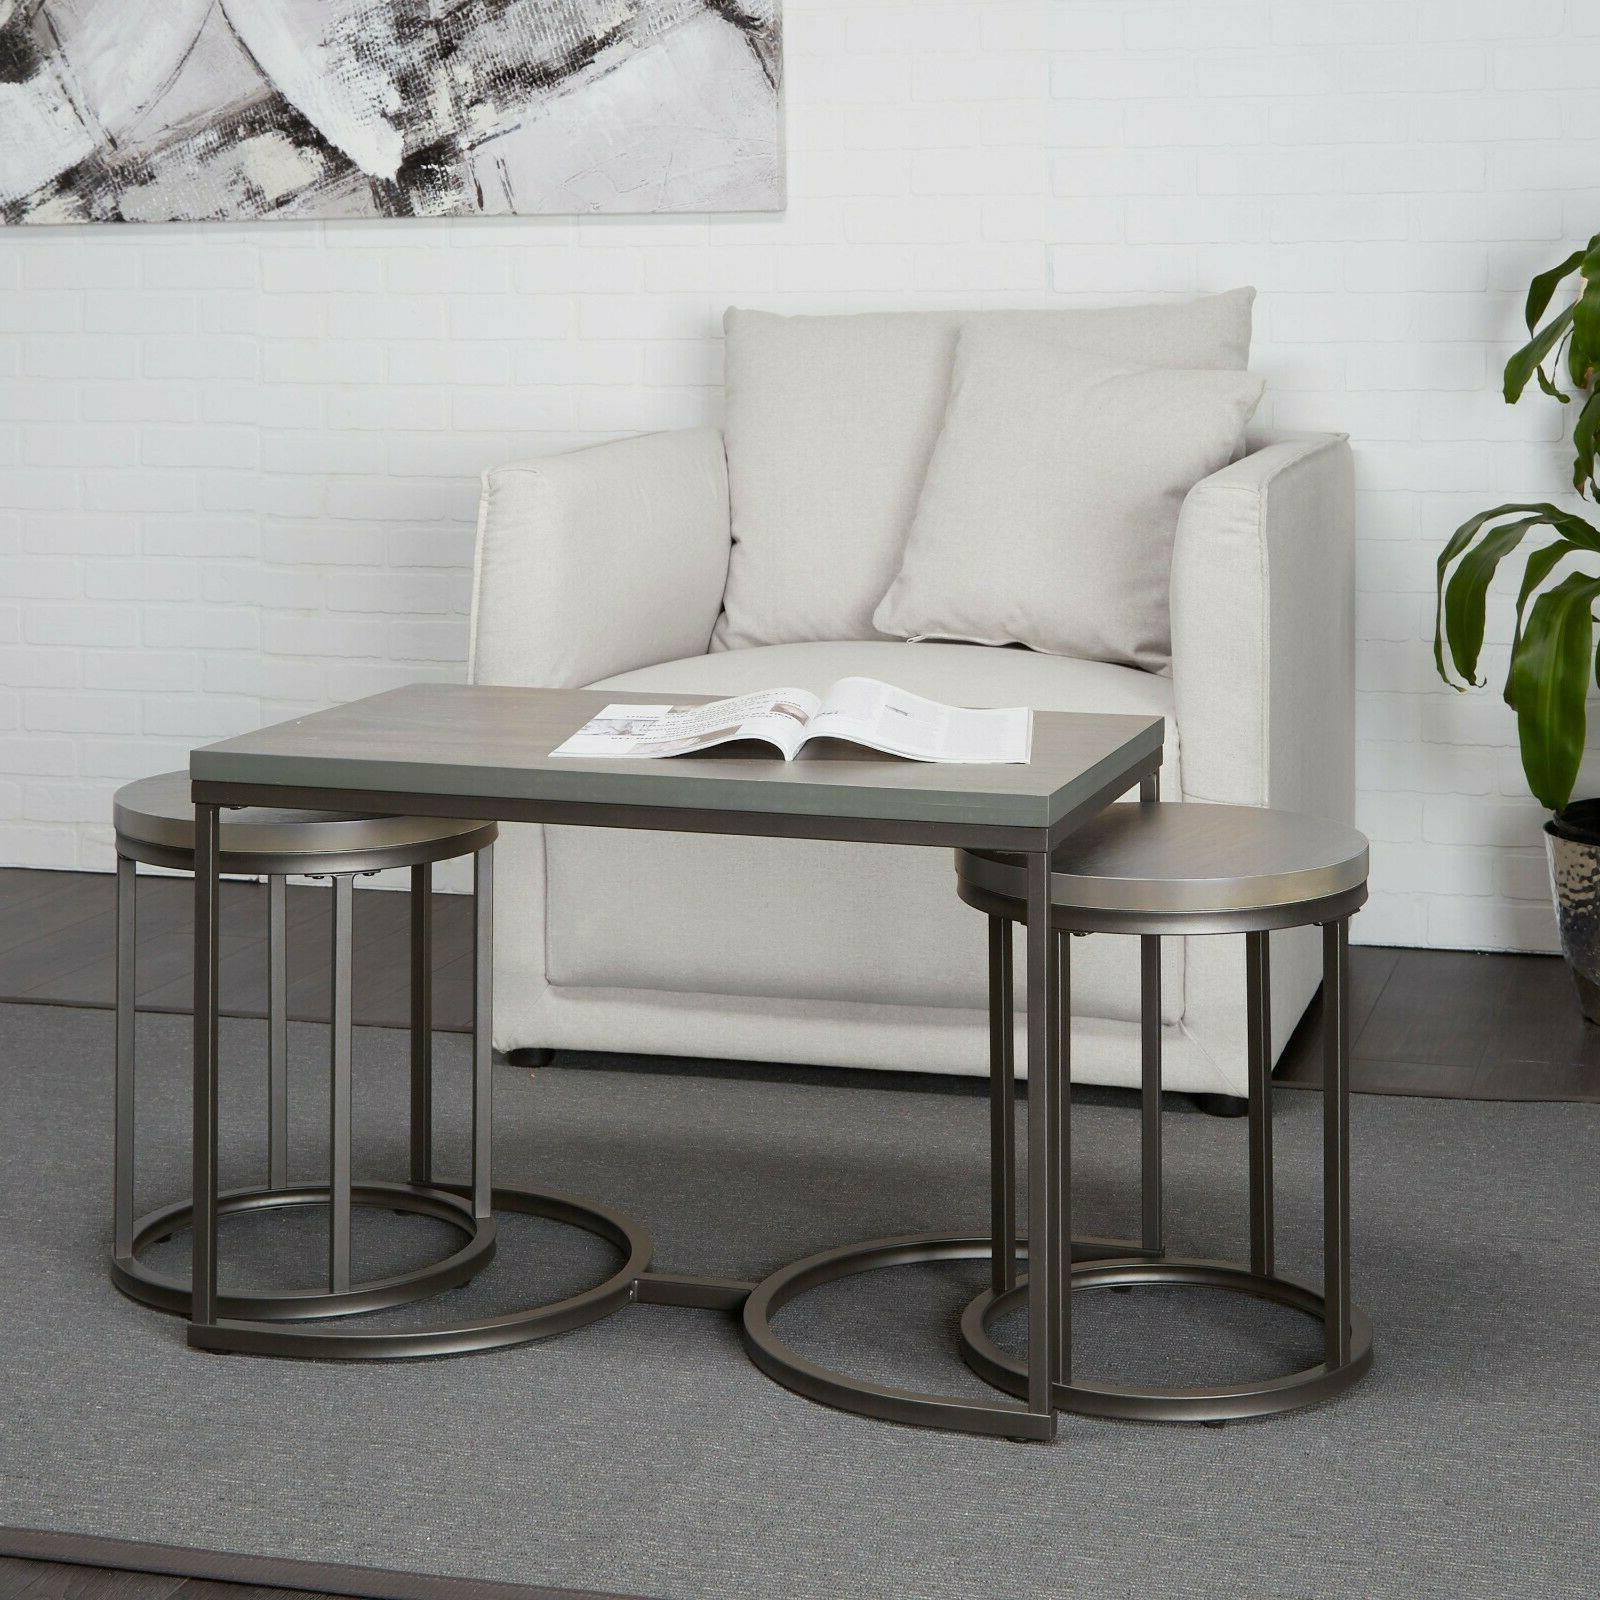 3 piece coffee set coffee table end Tables modern